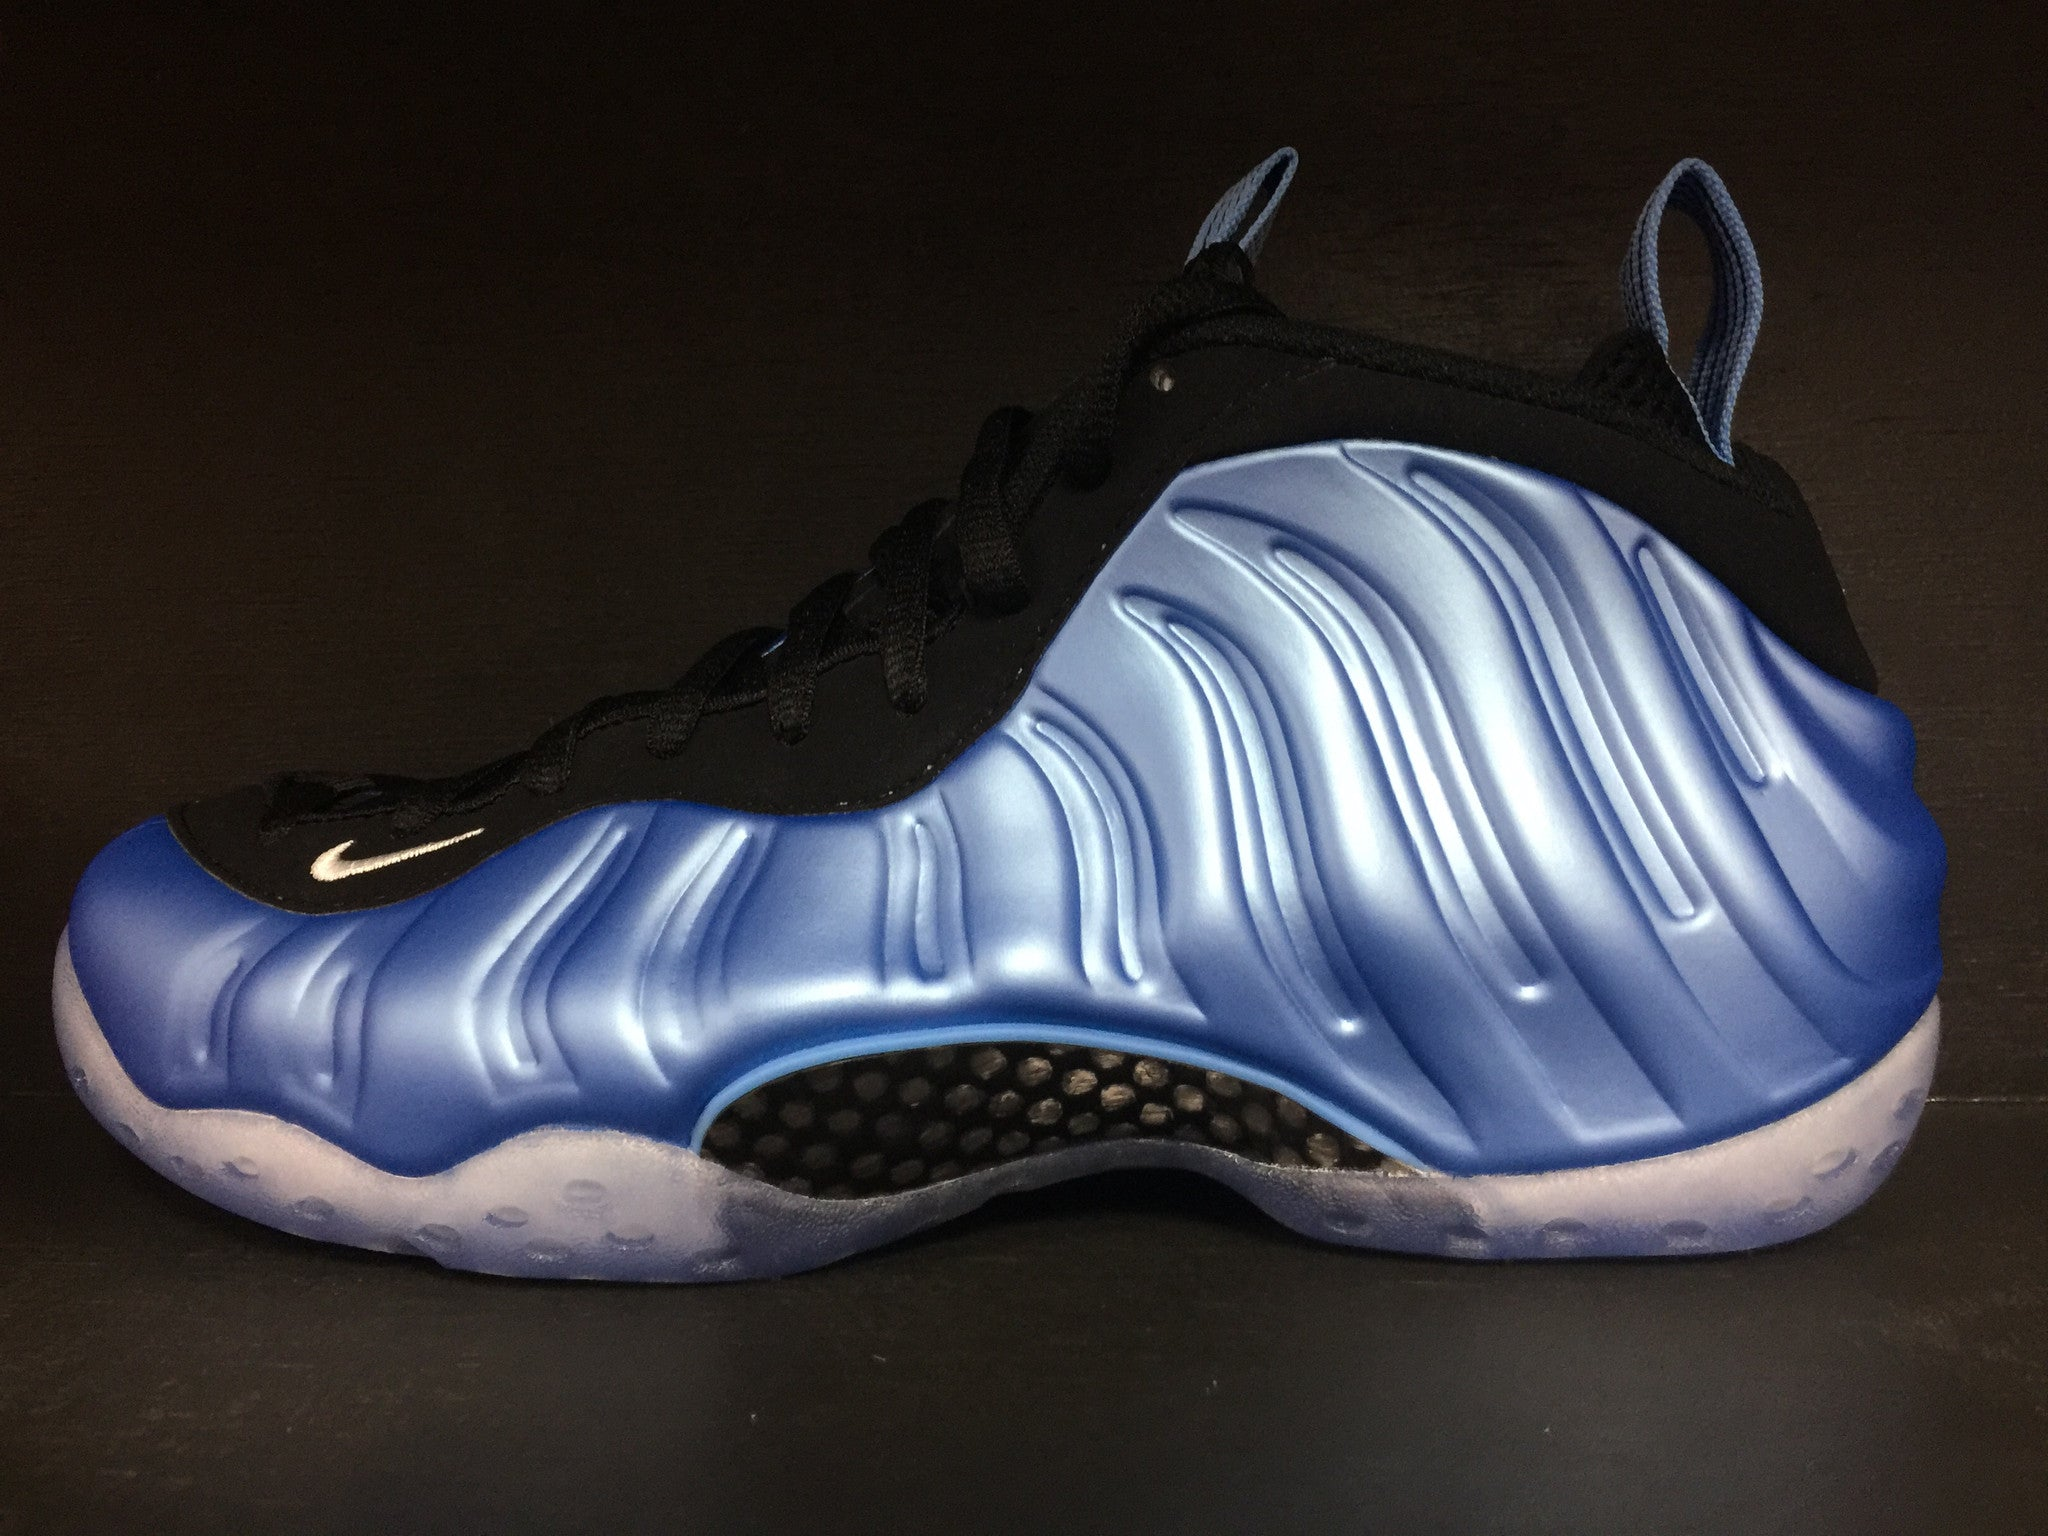 Nike Air Foamposite One 'University Blue'